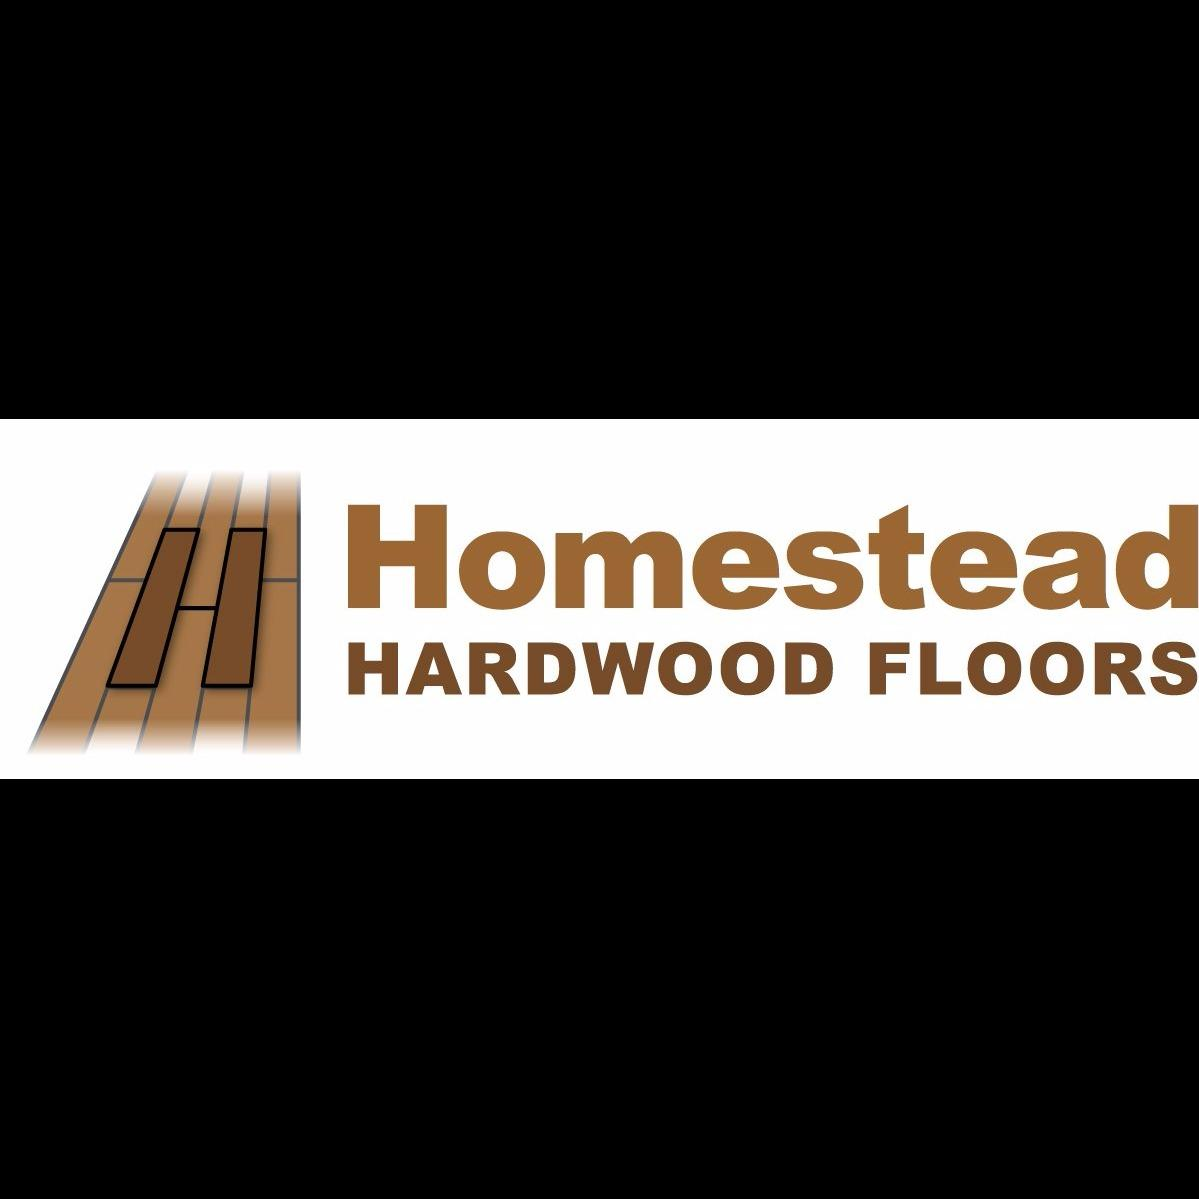 Homestead hardwood floors llc coupons near me in 8coupons for Hardwood flooring deals